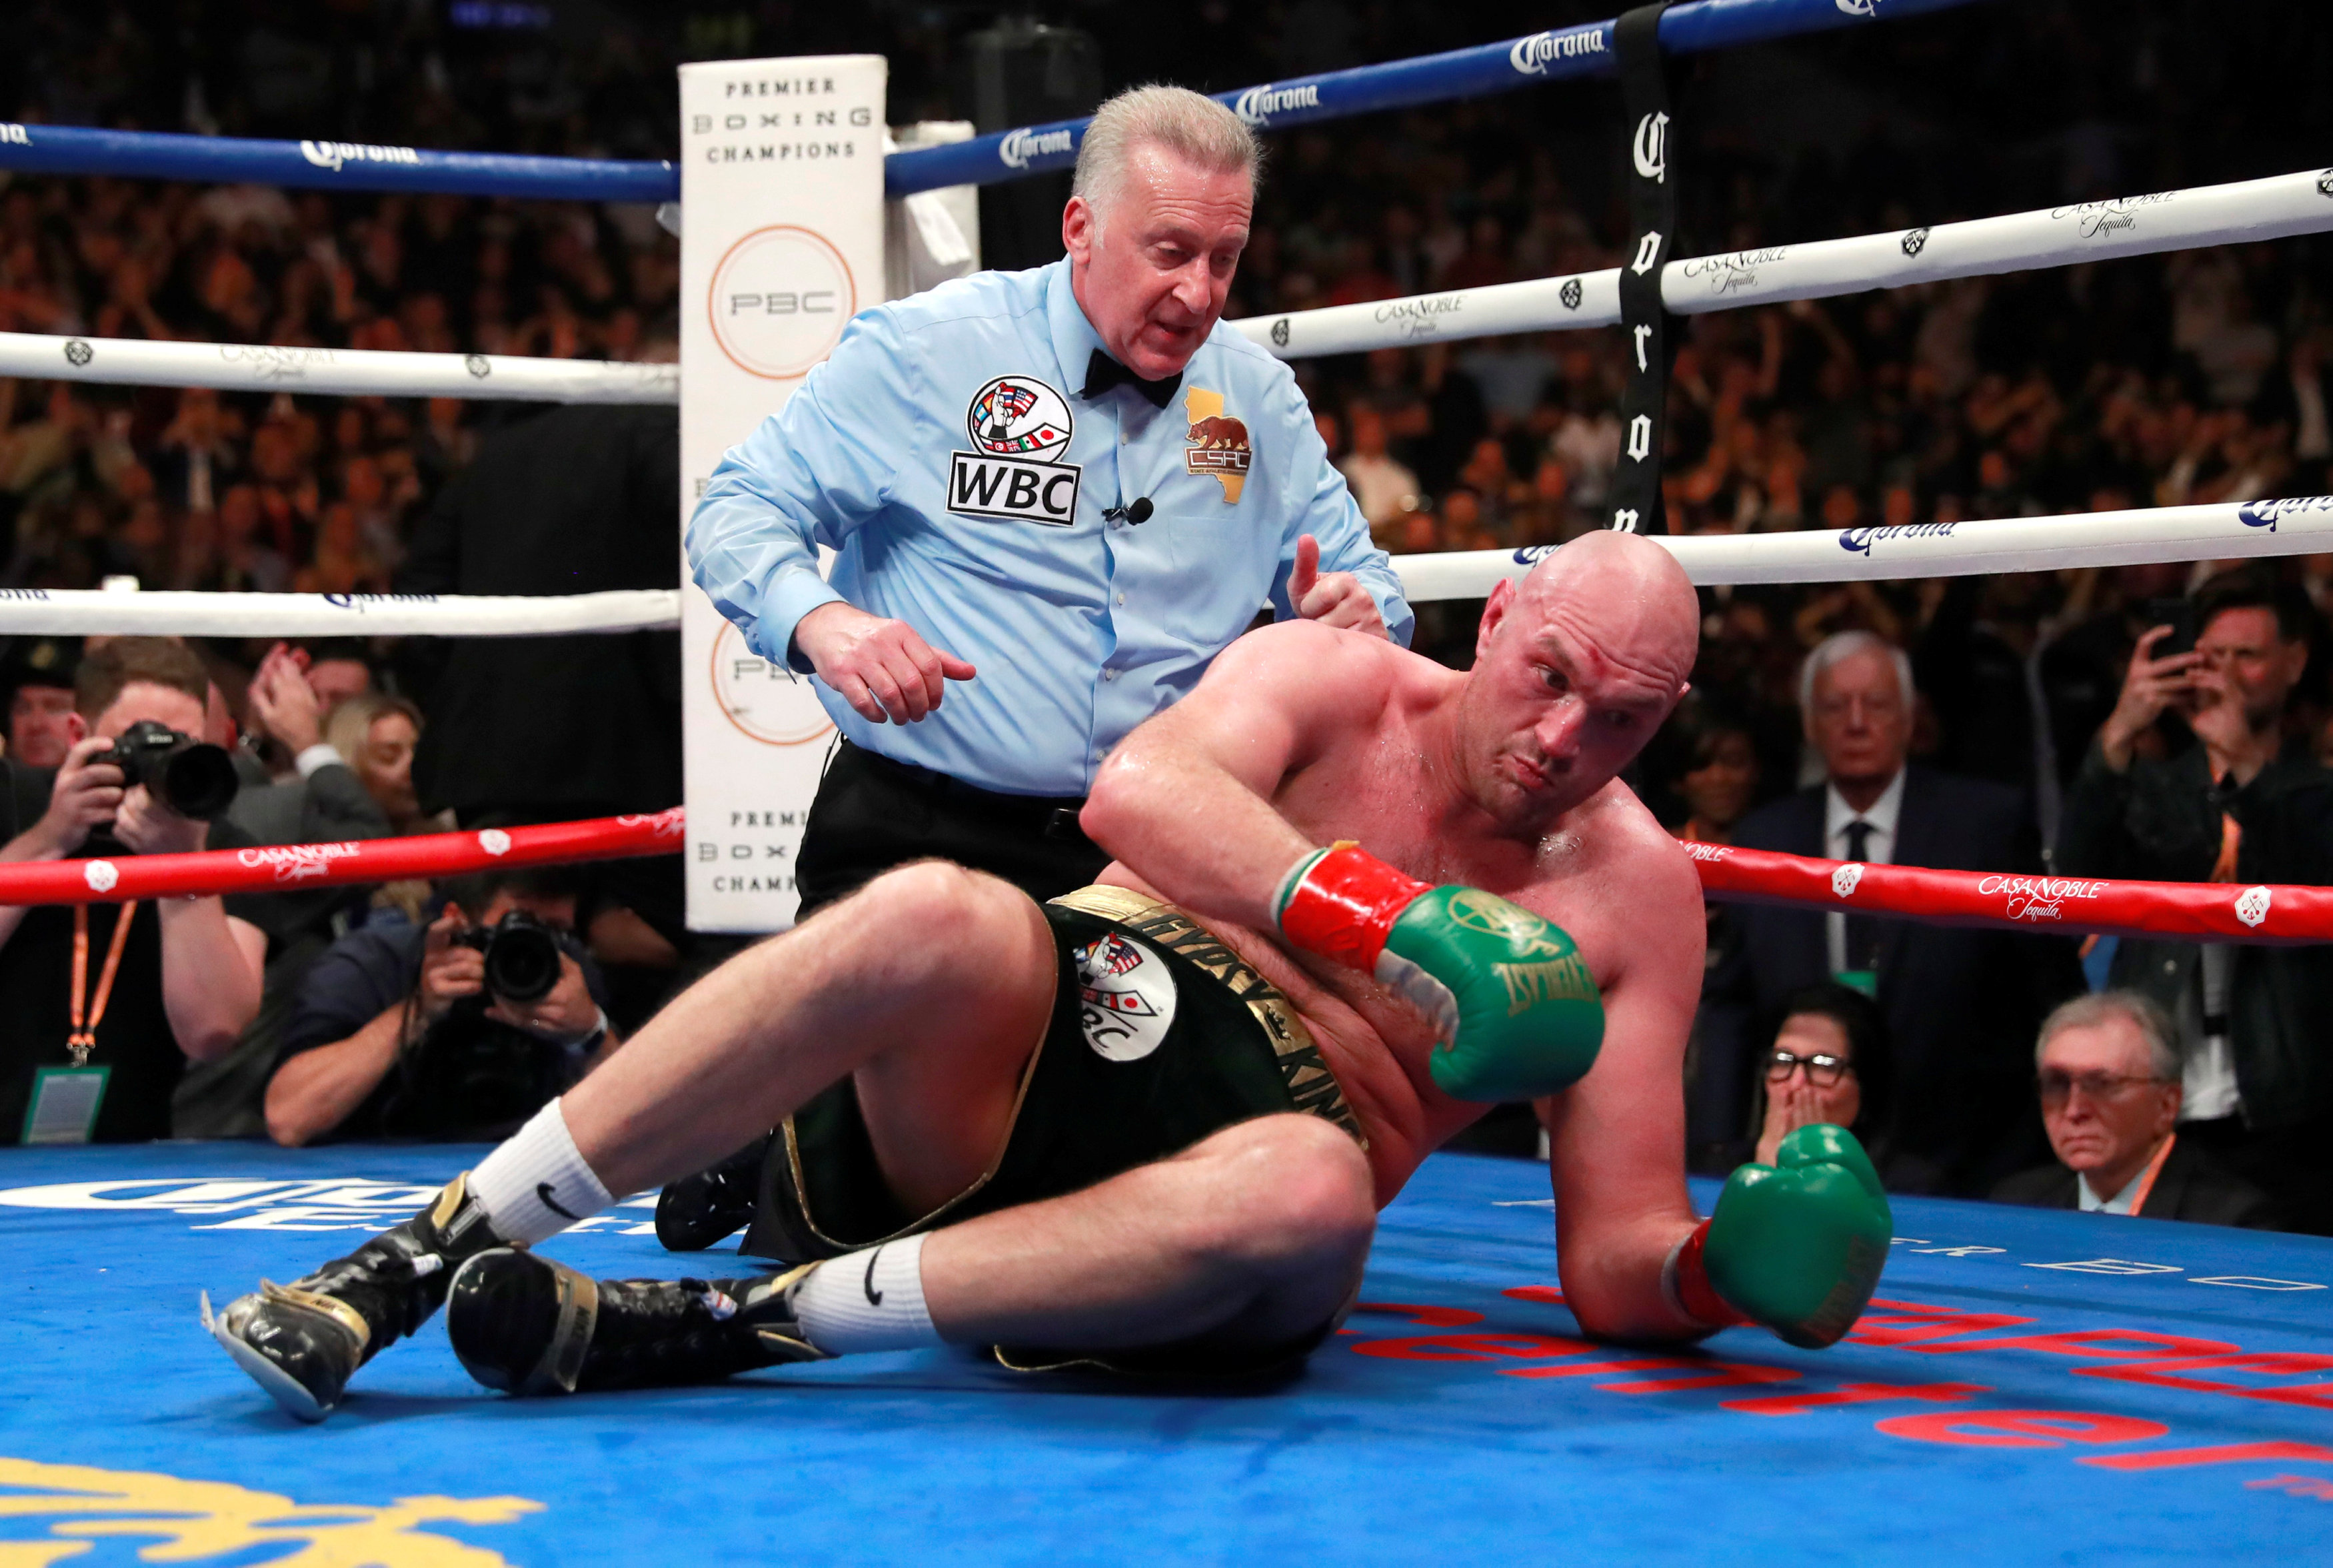 This was the moment when Tyson Fury miraculously got back to his feet in the 12th round after being flattened by Deontay Wilder